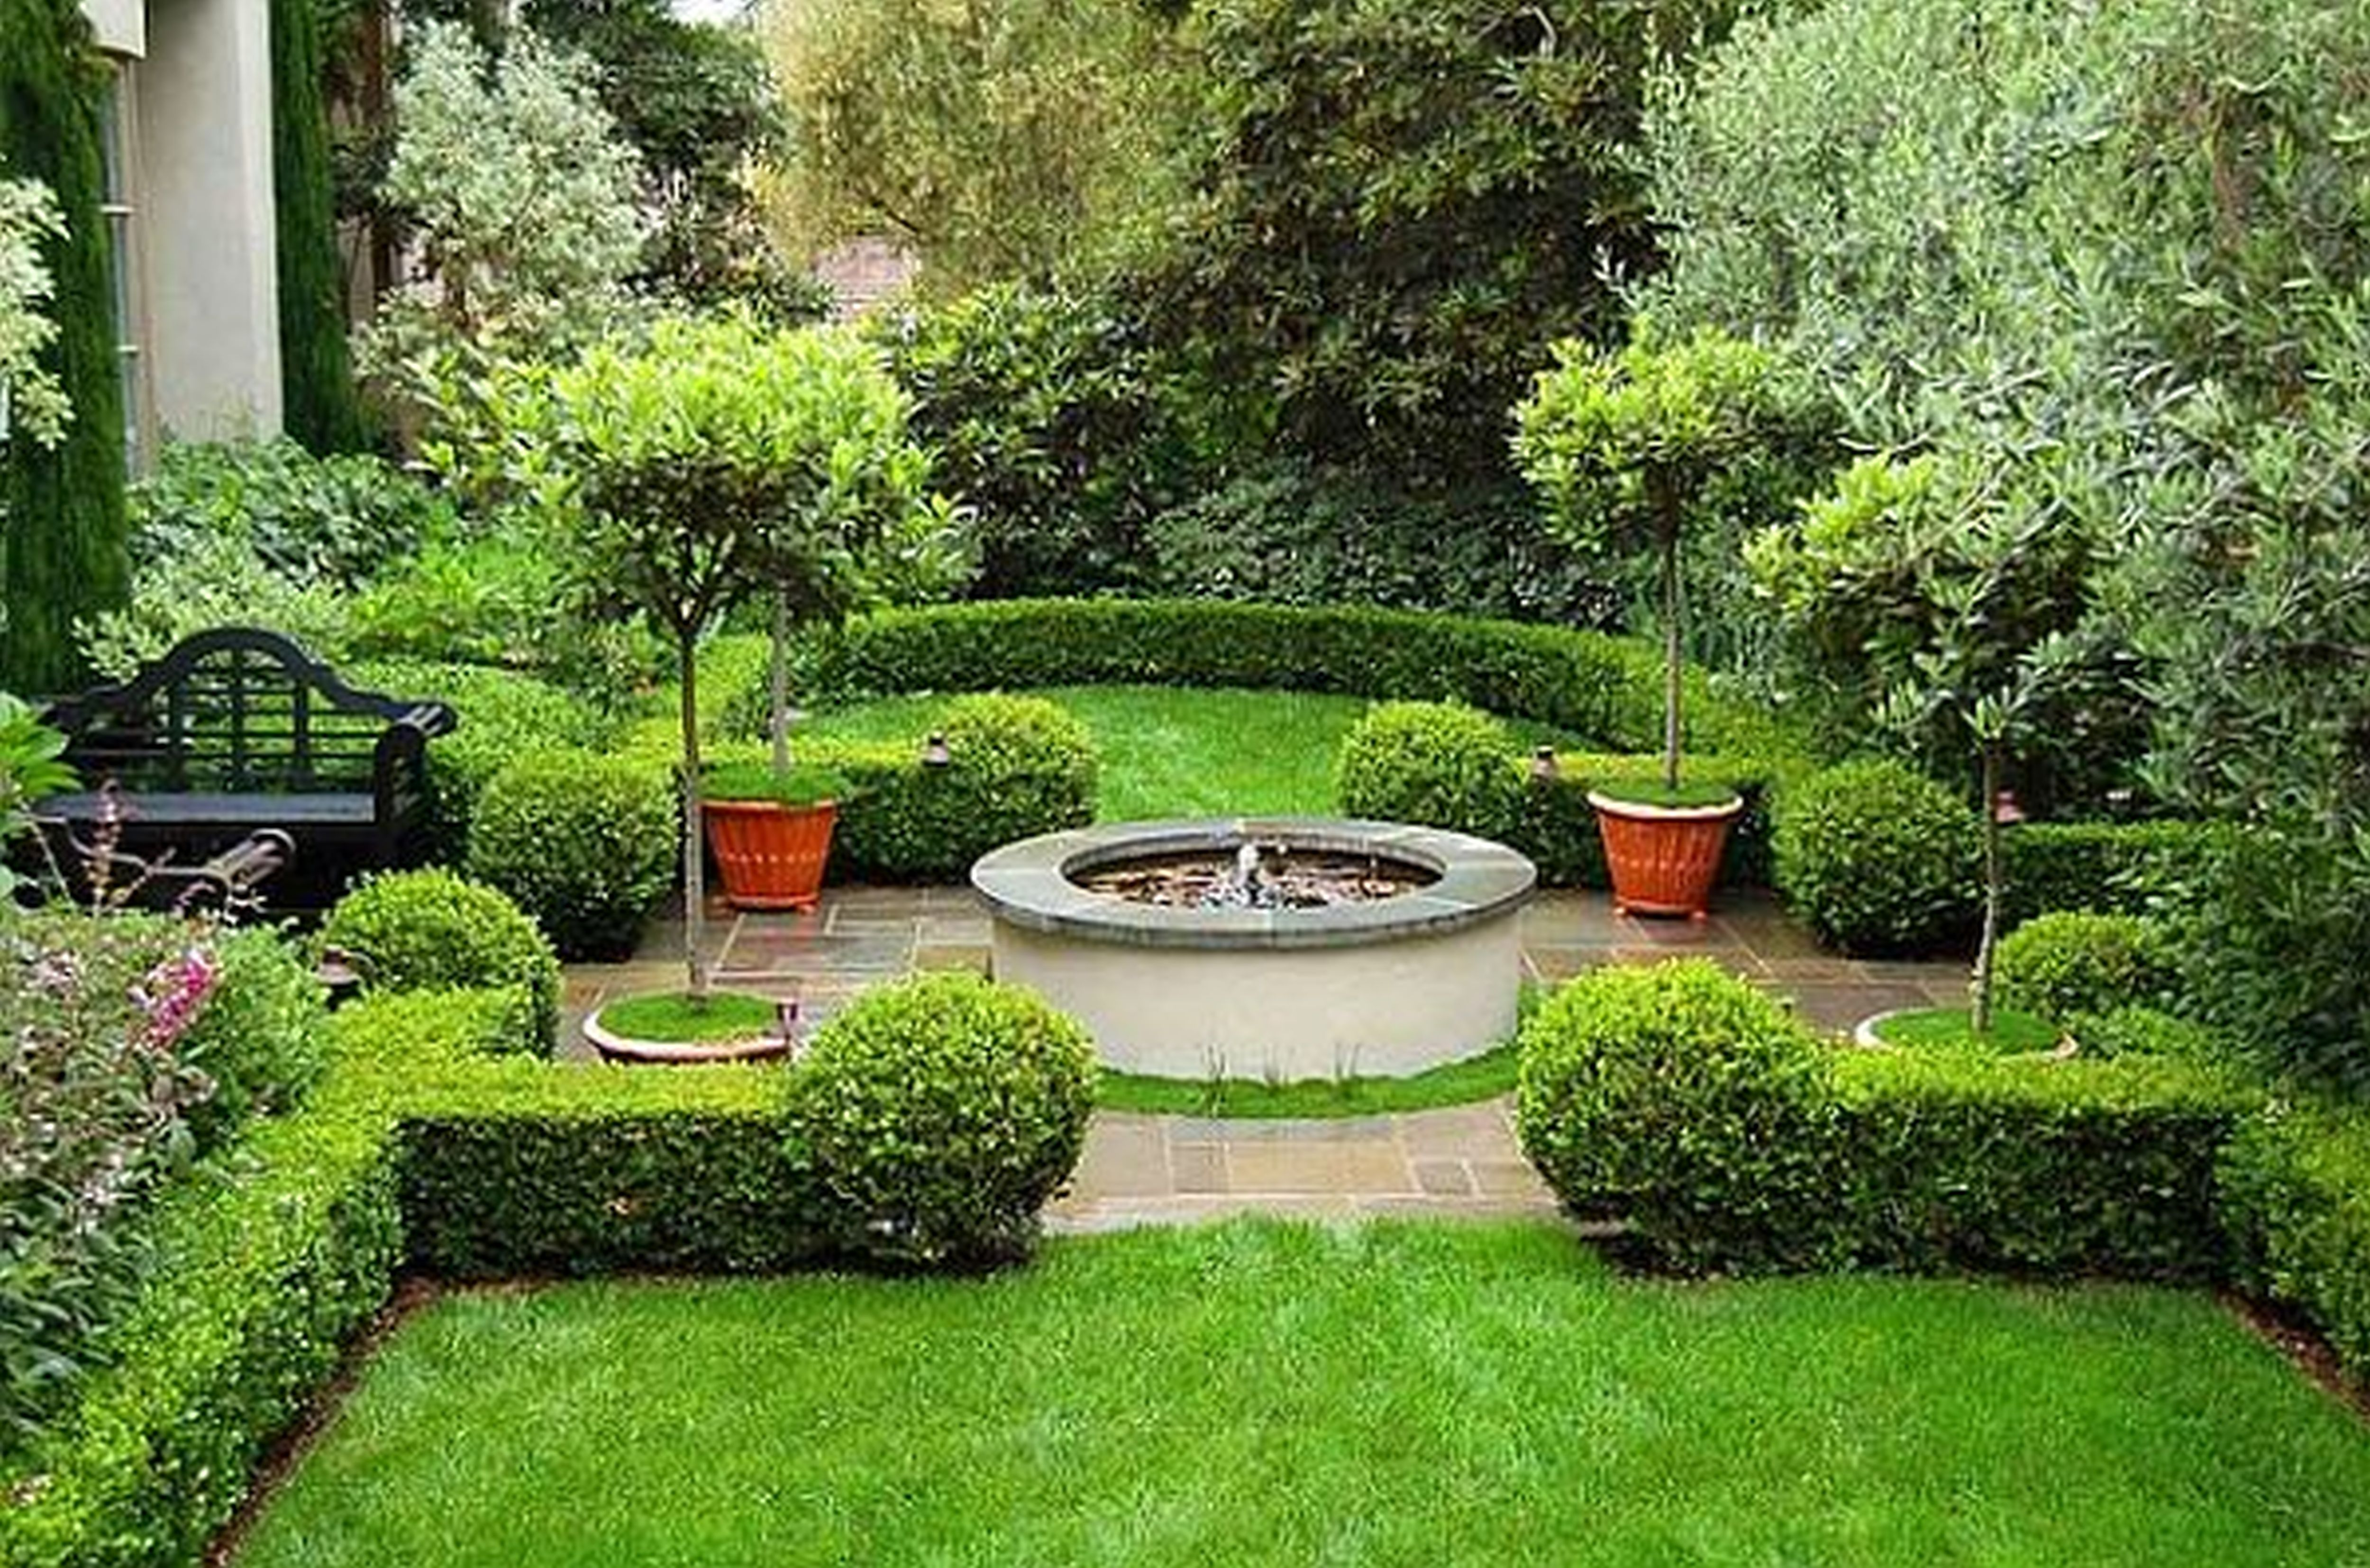 Planning landscaping organic garden landscaping - Design for backyard landscaping ...